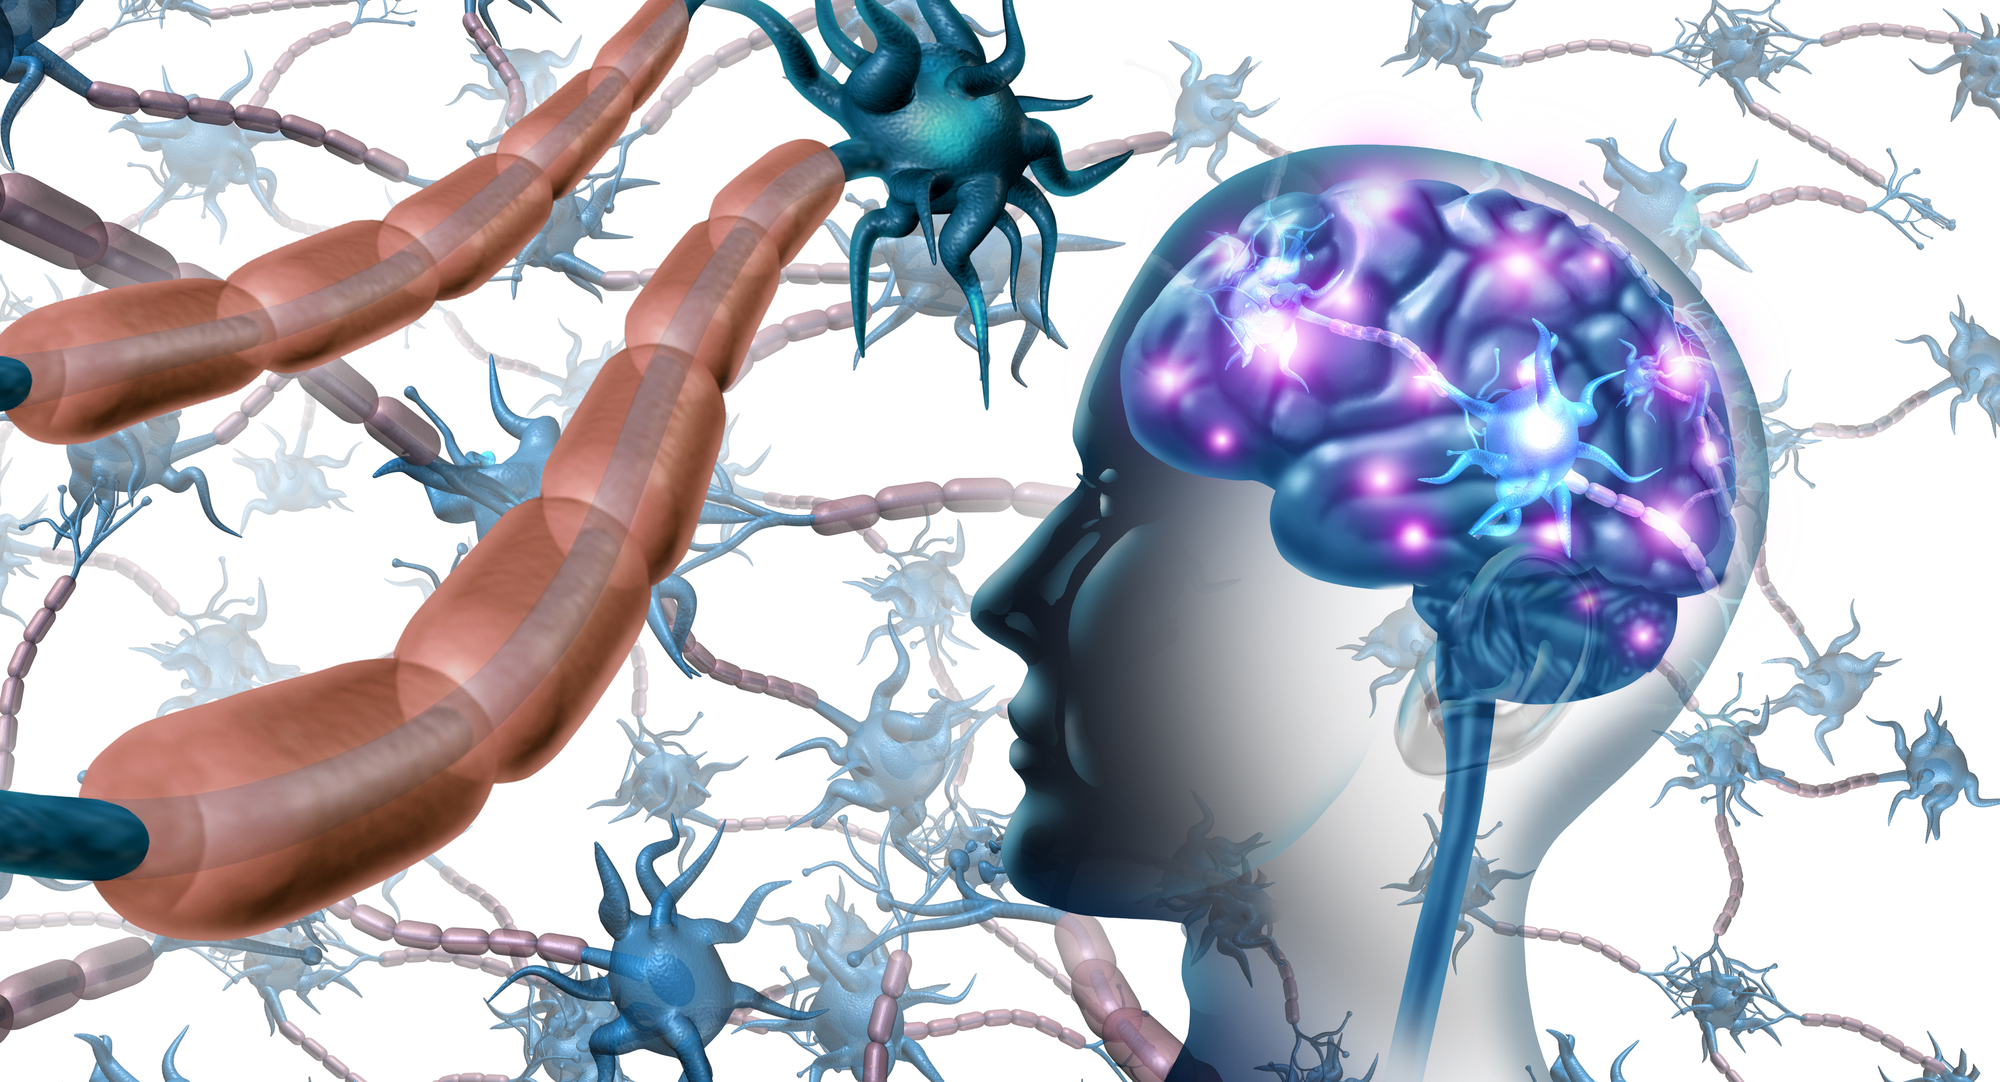 It is hypothesized a severe viral infection in adolescence can trigger a cascade of neuroinflammation leading to the onset of neurological disease years, or even decades, later